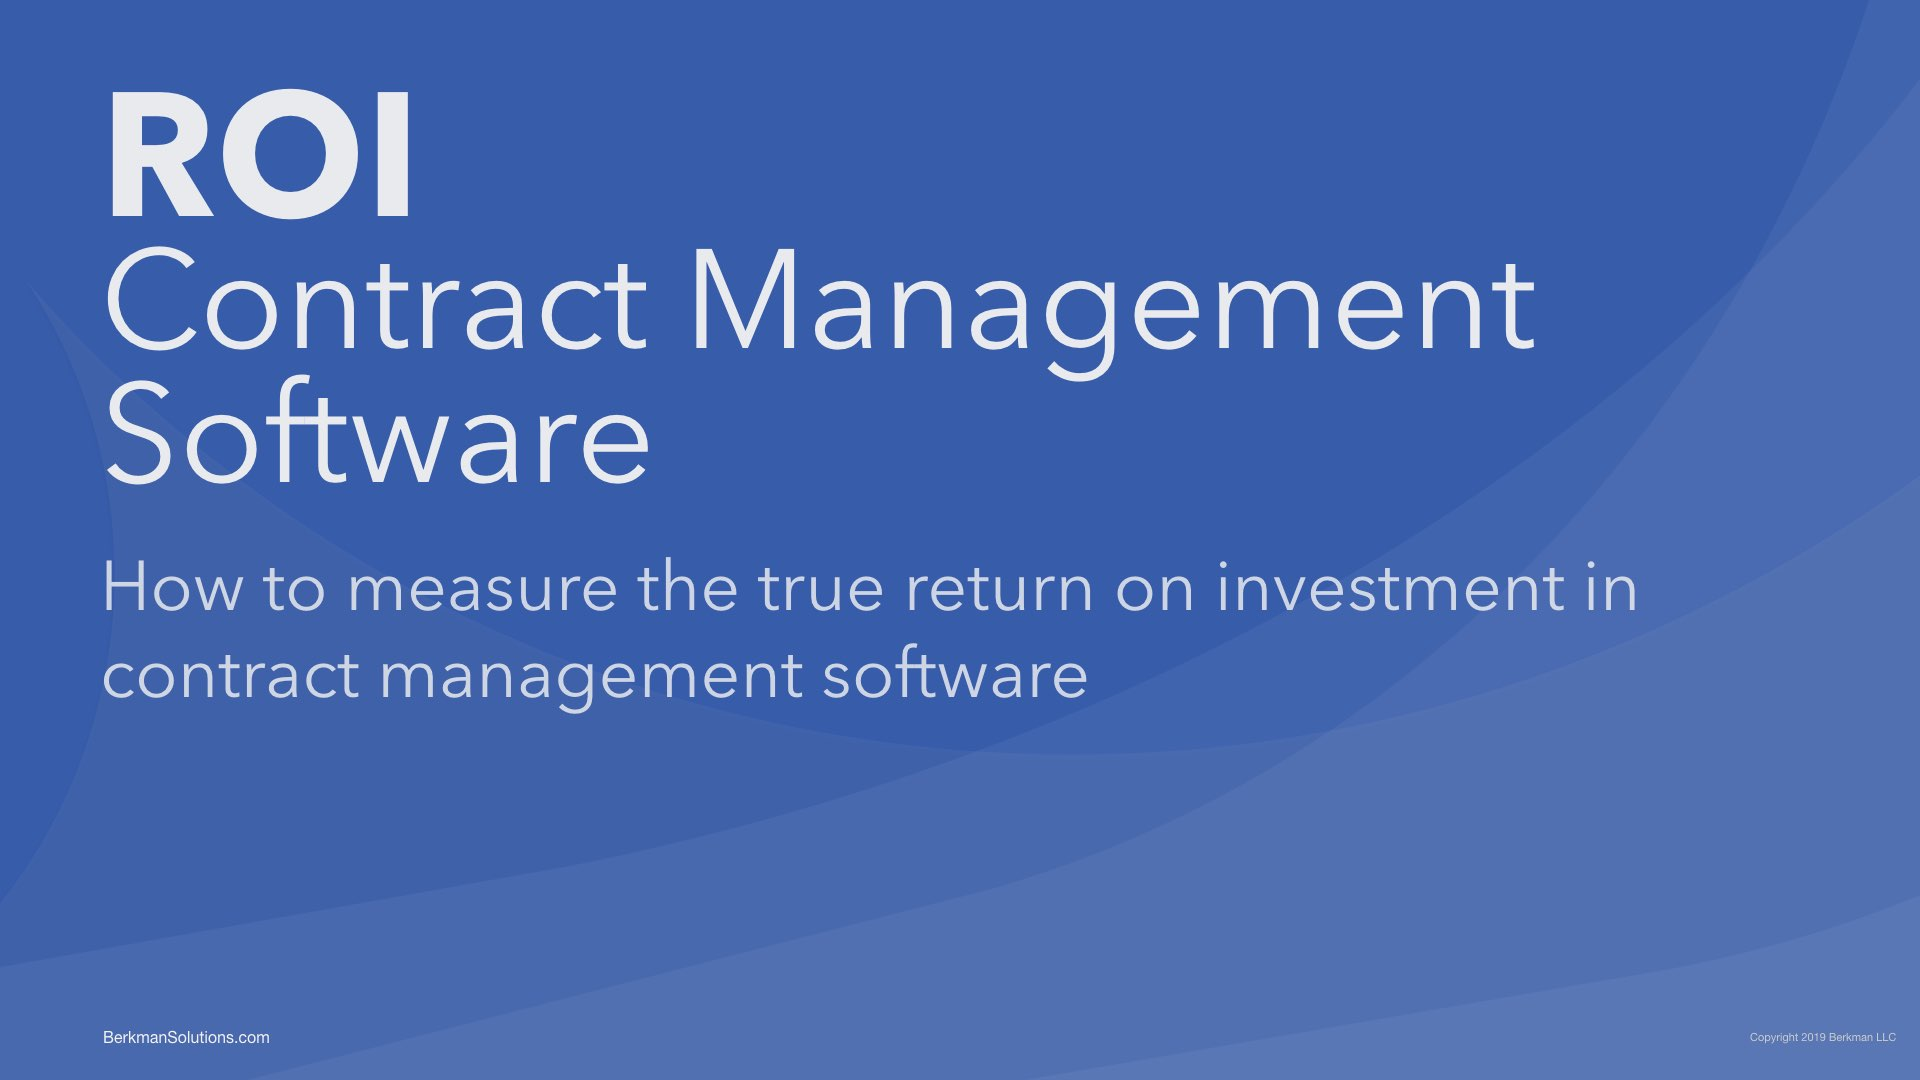 ROI on Contract Management Software